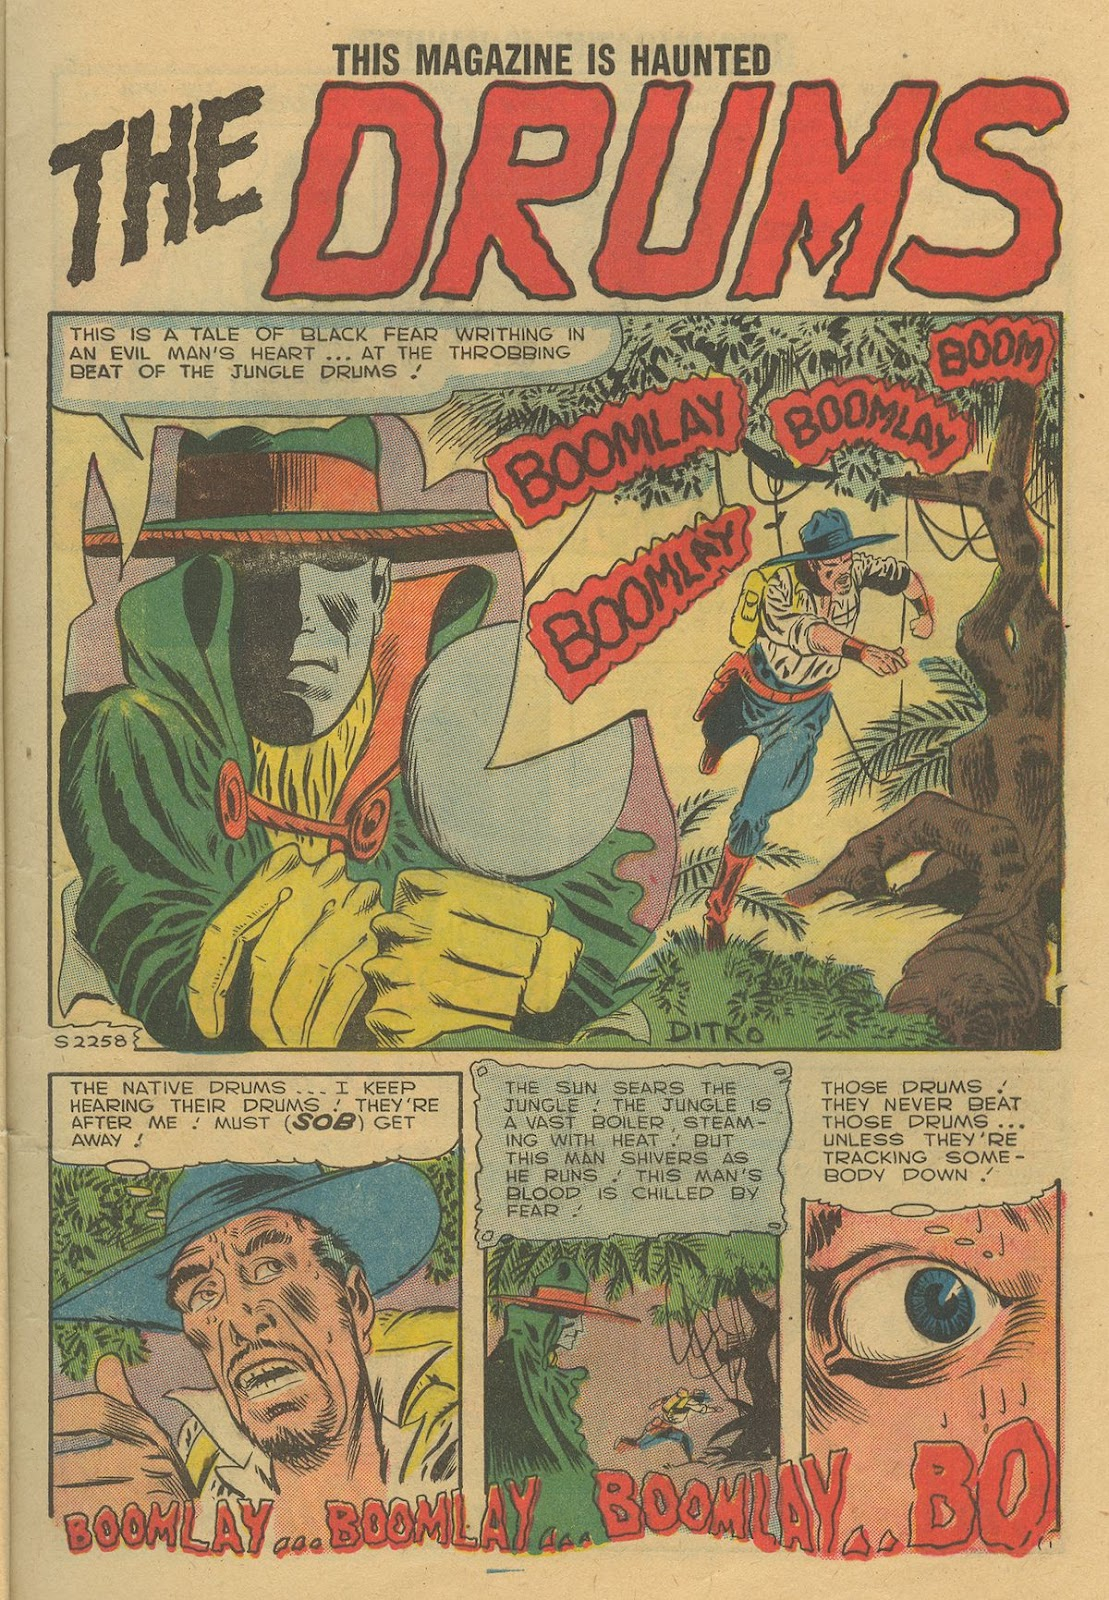 Read online This Magazine Is Haunted comic -  Issue #13 - 9